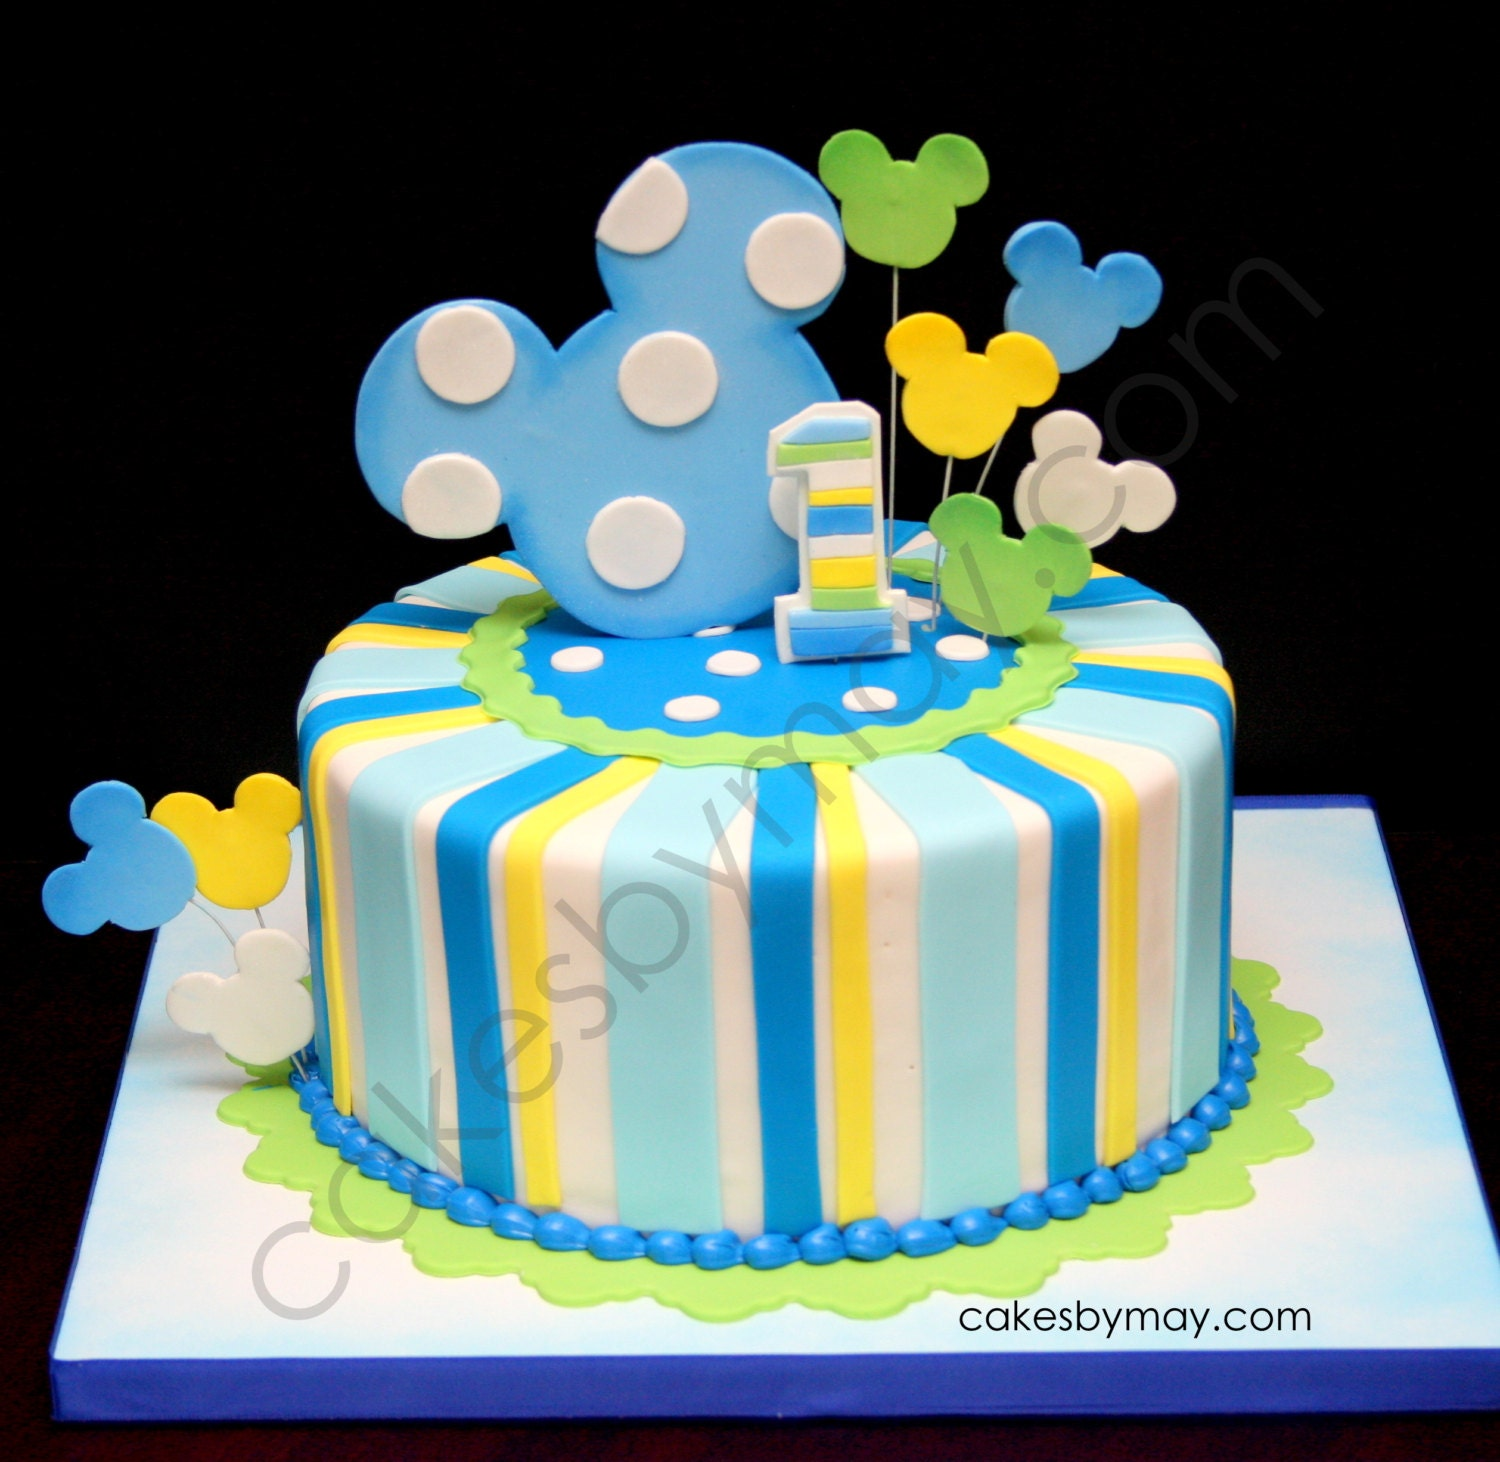 Cake Toppers Baby Mickey : Baby Mickey Inspired Fondant Cake Topper and Decorations